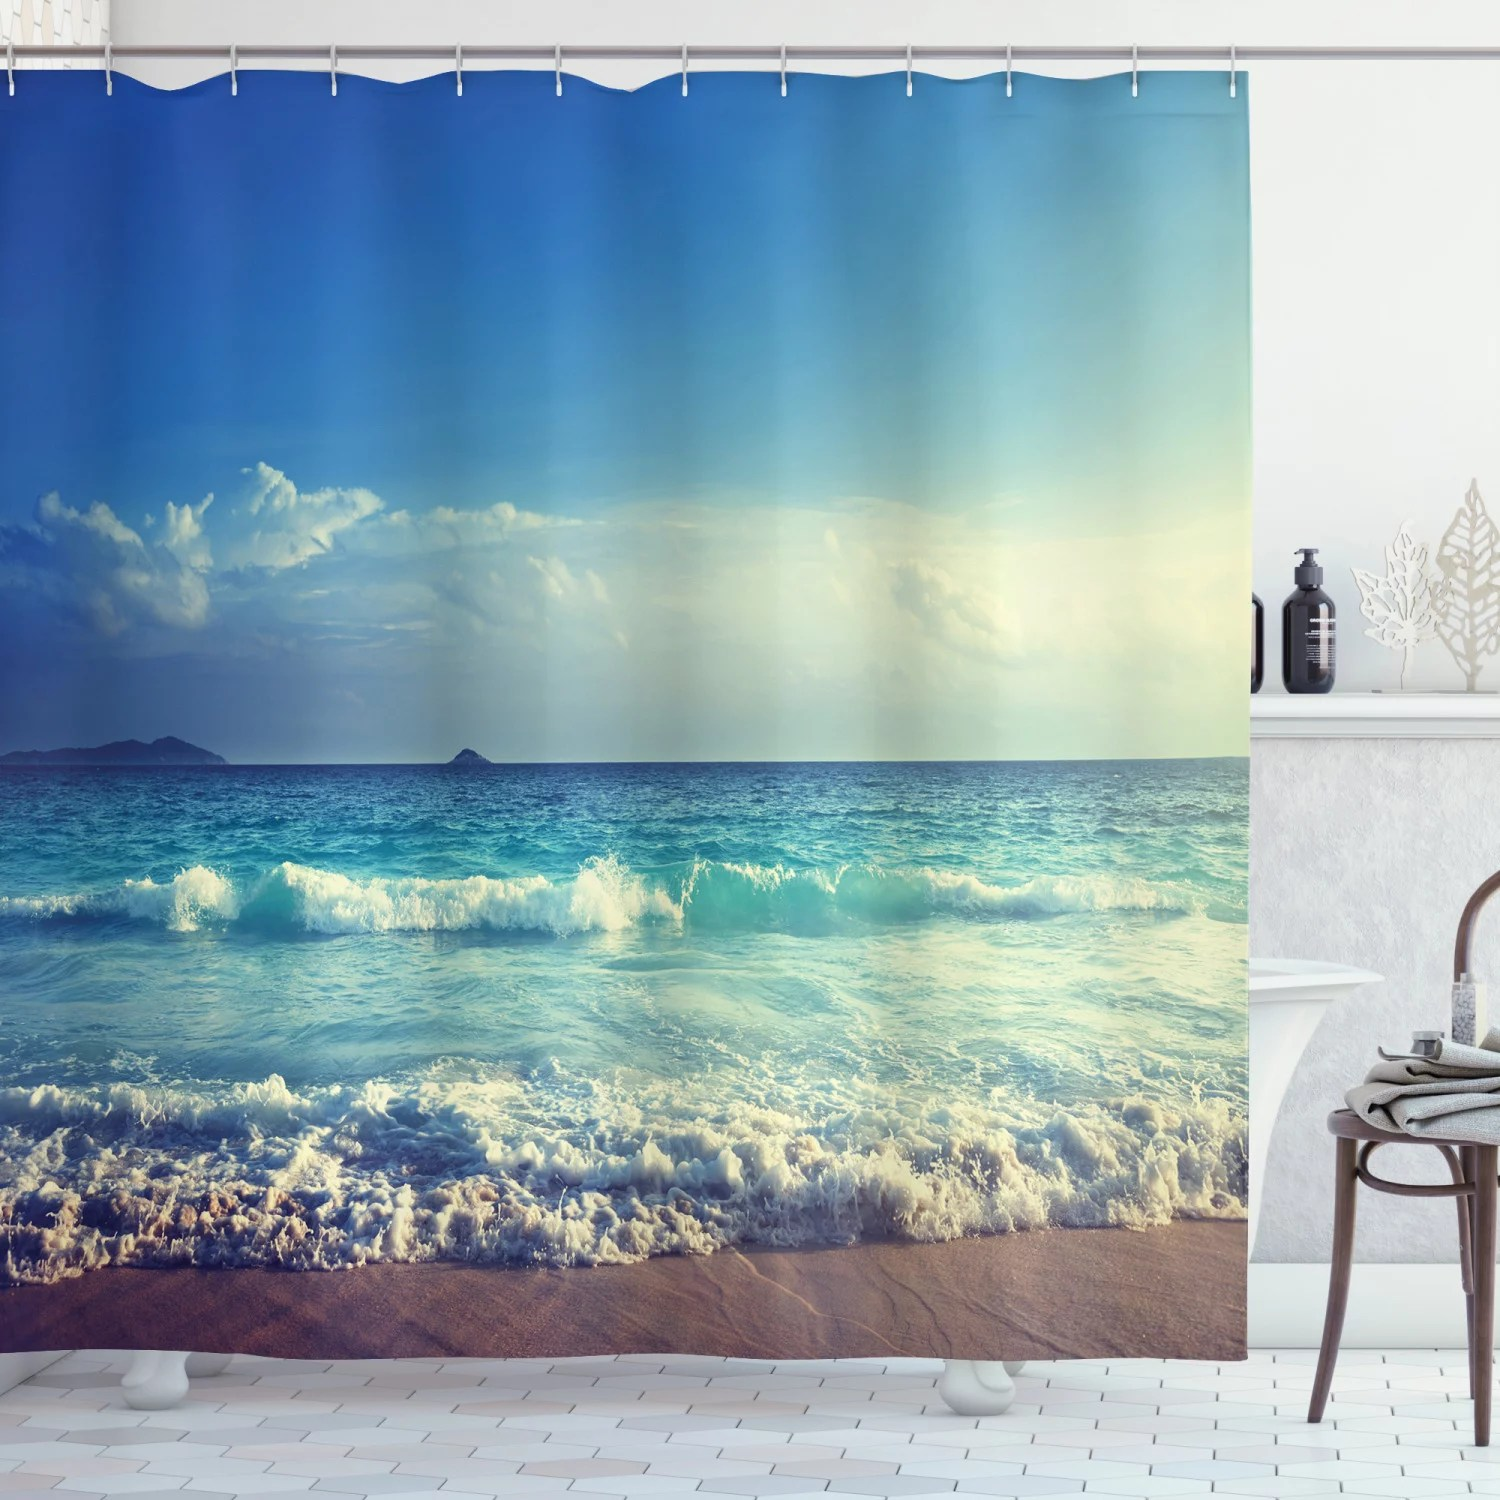 ocean decor shower curtain set tropical island paradise beach at sunset time with waves and the misty sea image bathroom accessories 69w x 70l